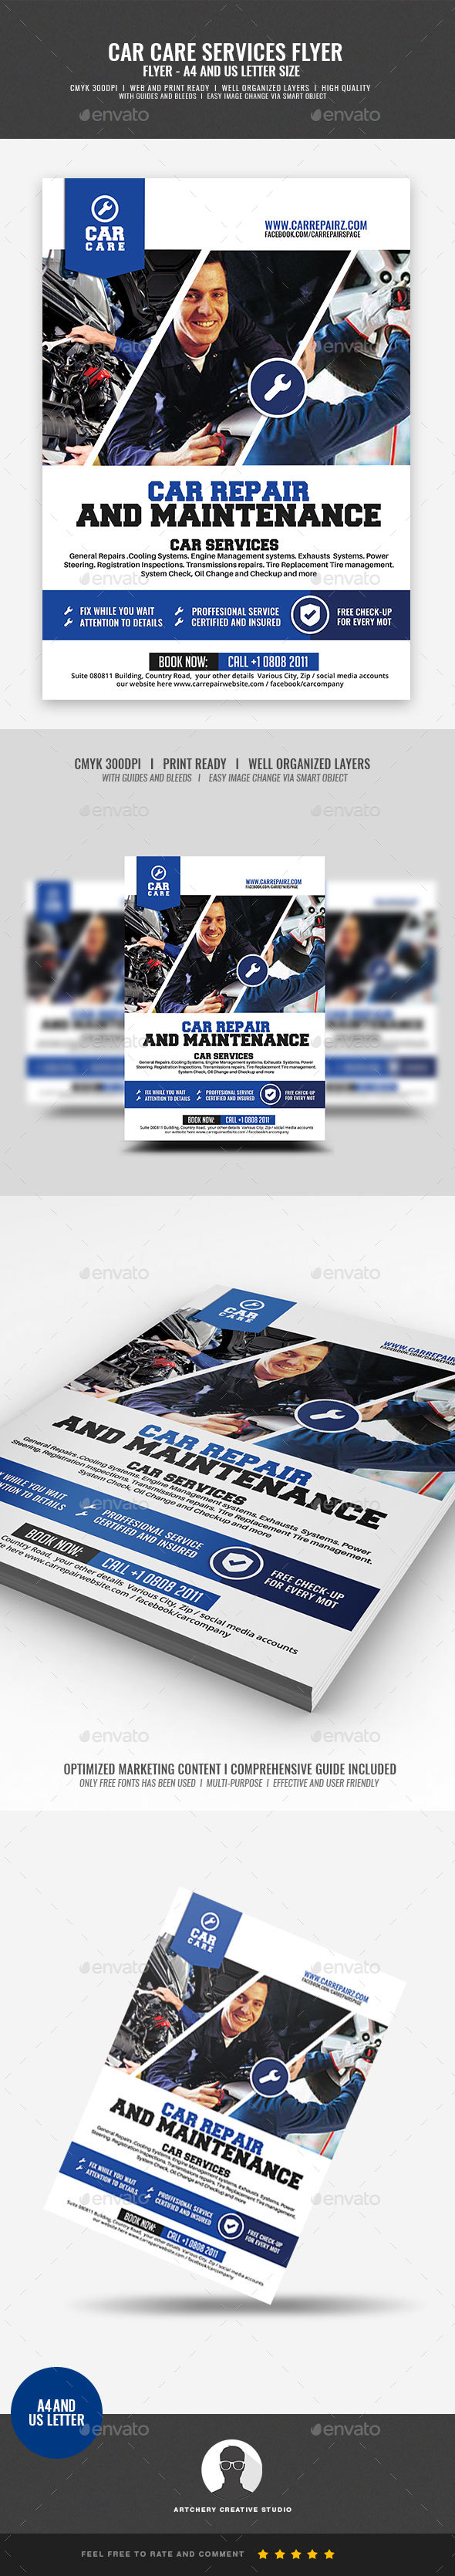 Car Repair and Maintenance Flyer - Corporate Flyers